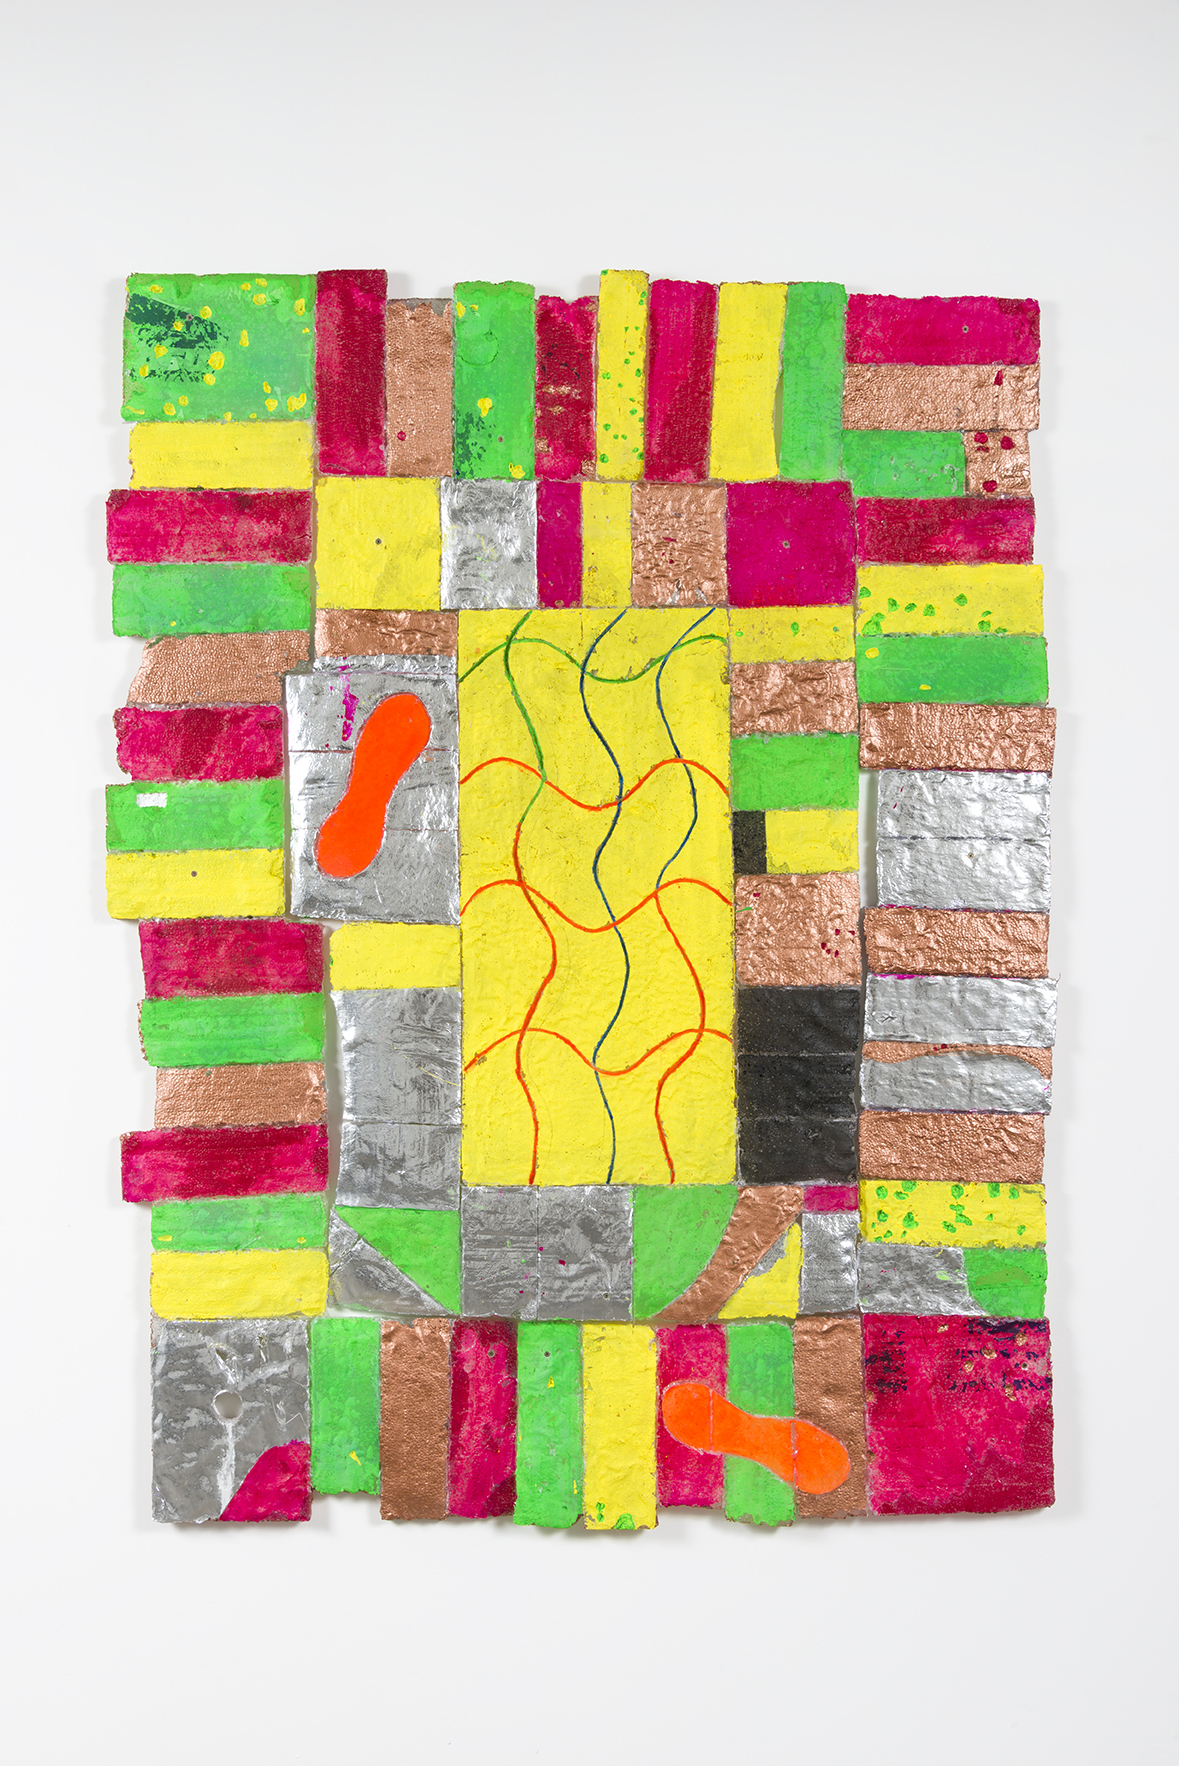 Another Wind of Rug, 2014-2016  Resin with paint and foil  73 x 55 x 1 inches